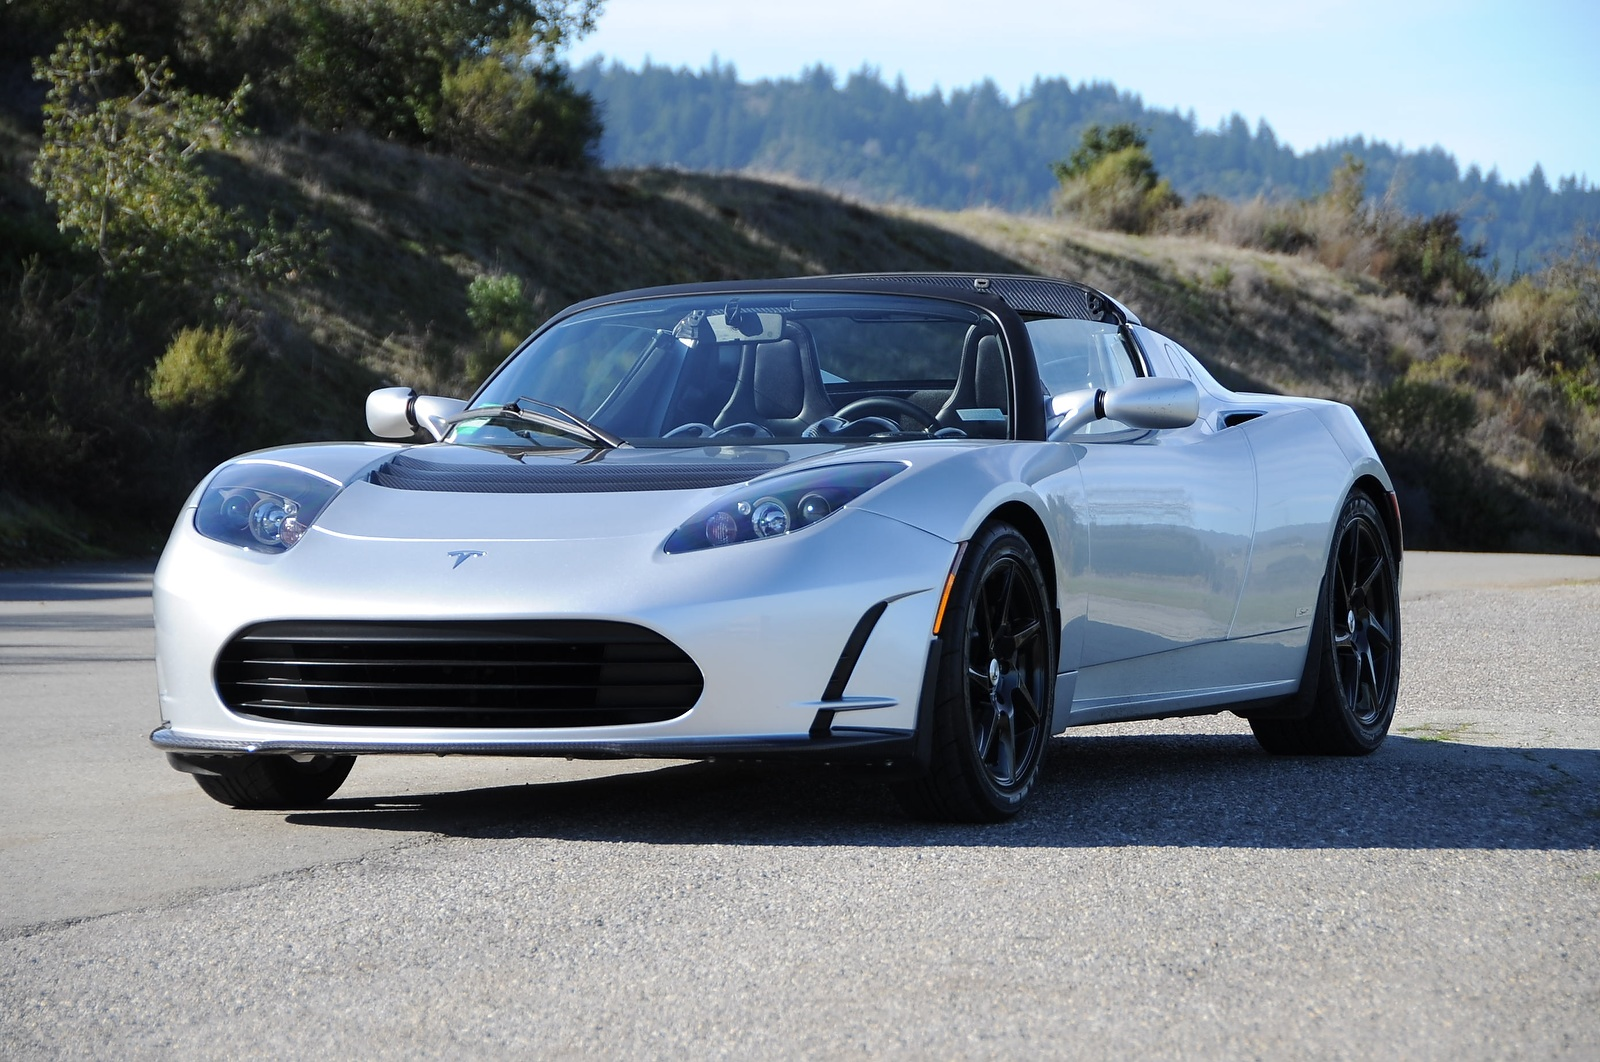 new and used tesla roadster prices photos reviews specs the car connection. Black Bedroom Furniture Sets. Home Design Ideas